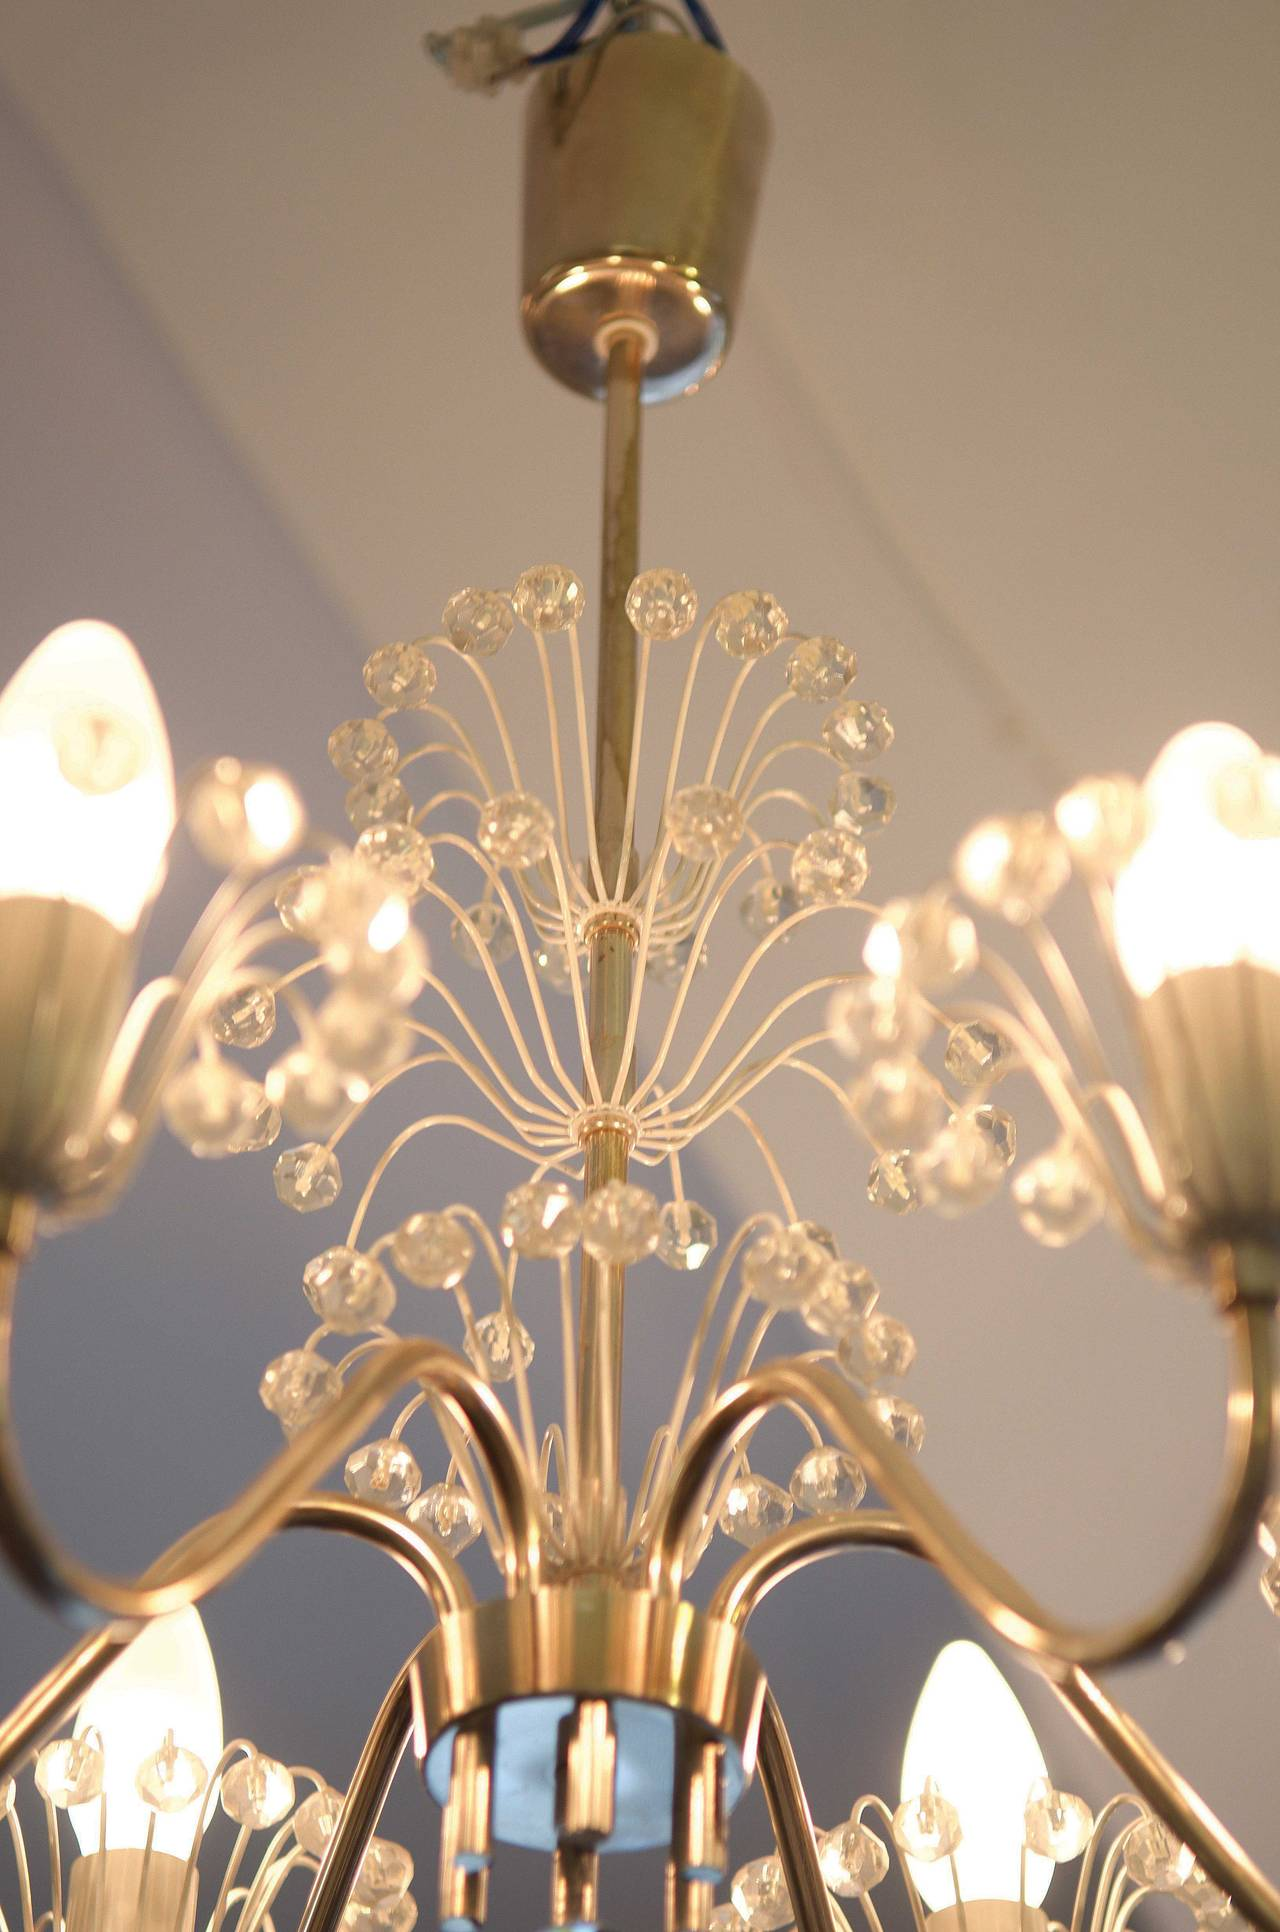 Mid-20th Century Mid-Century Fountain Chandelier by Emil Stejnar for Rupert Nikoll For Sale